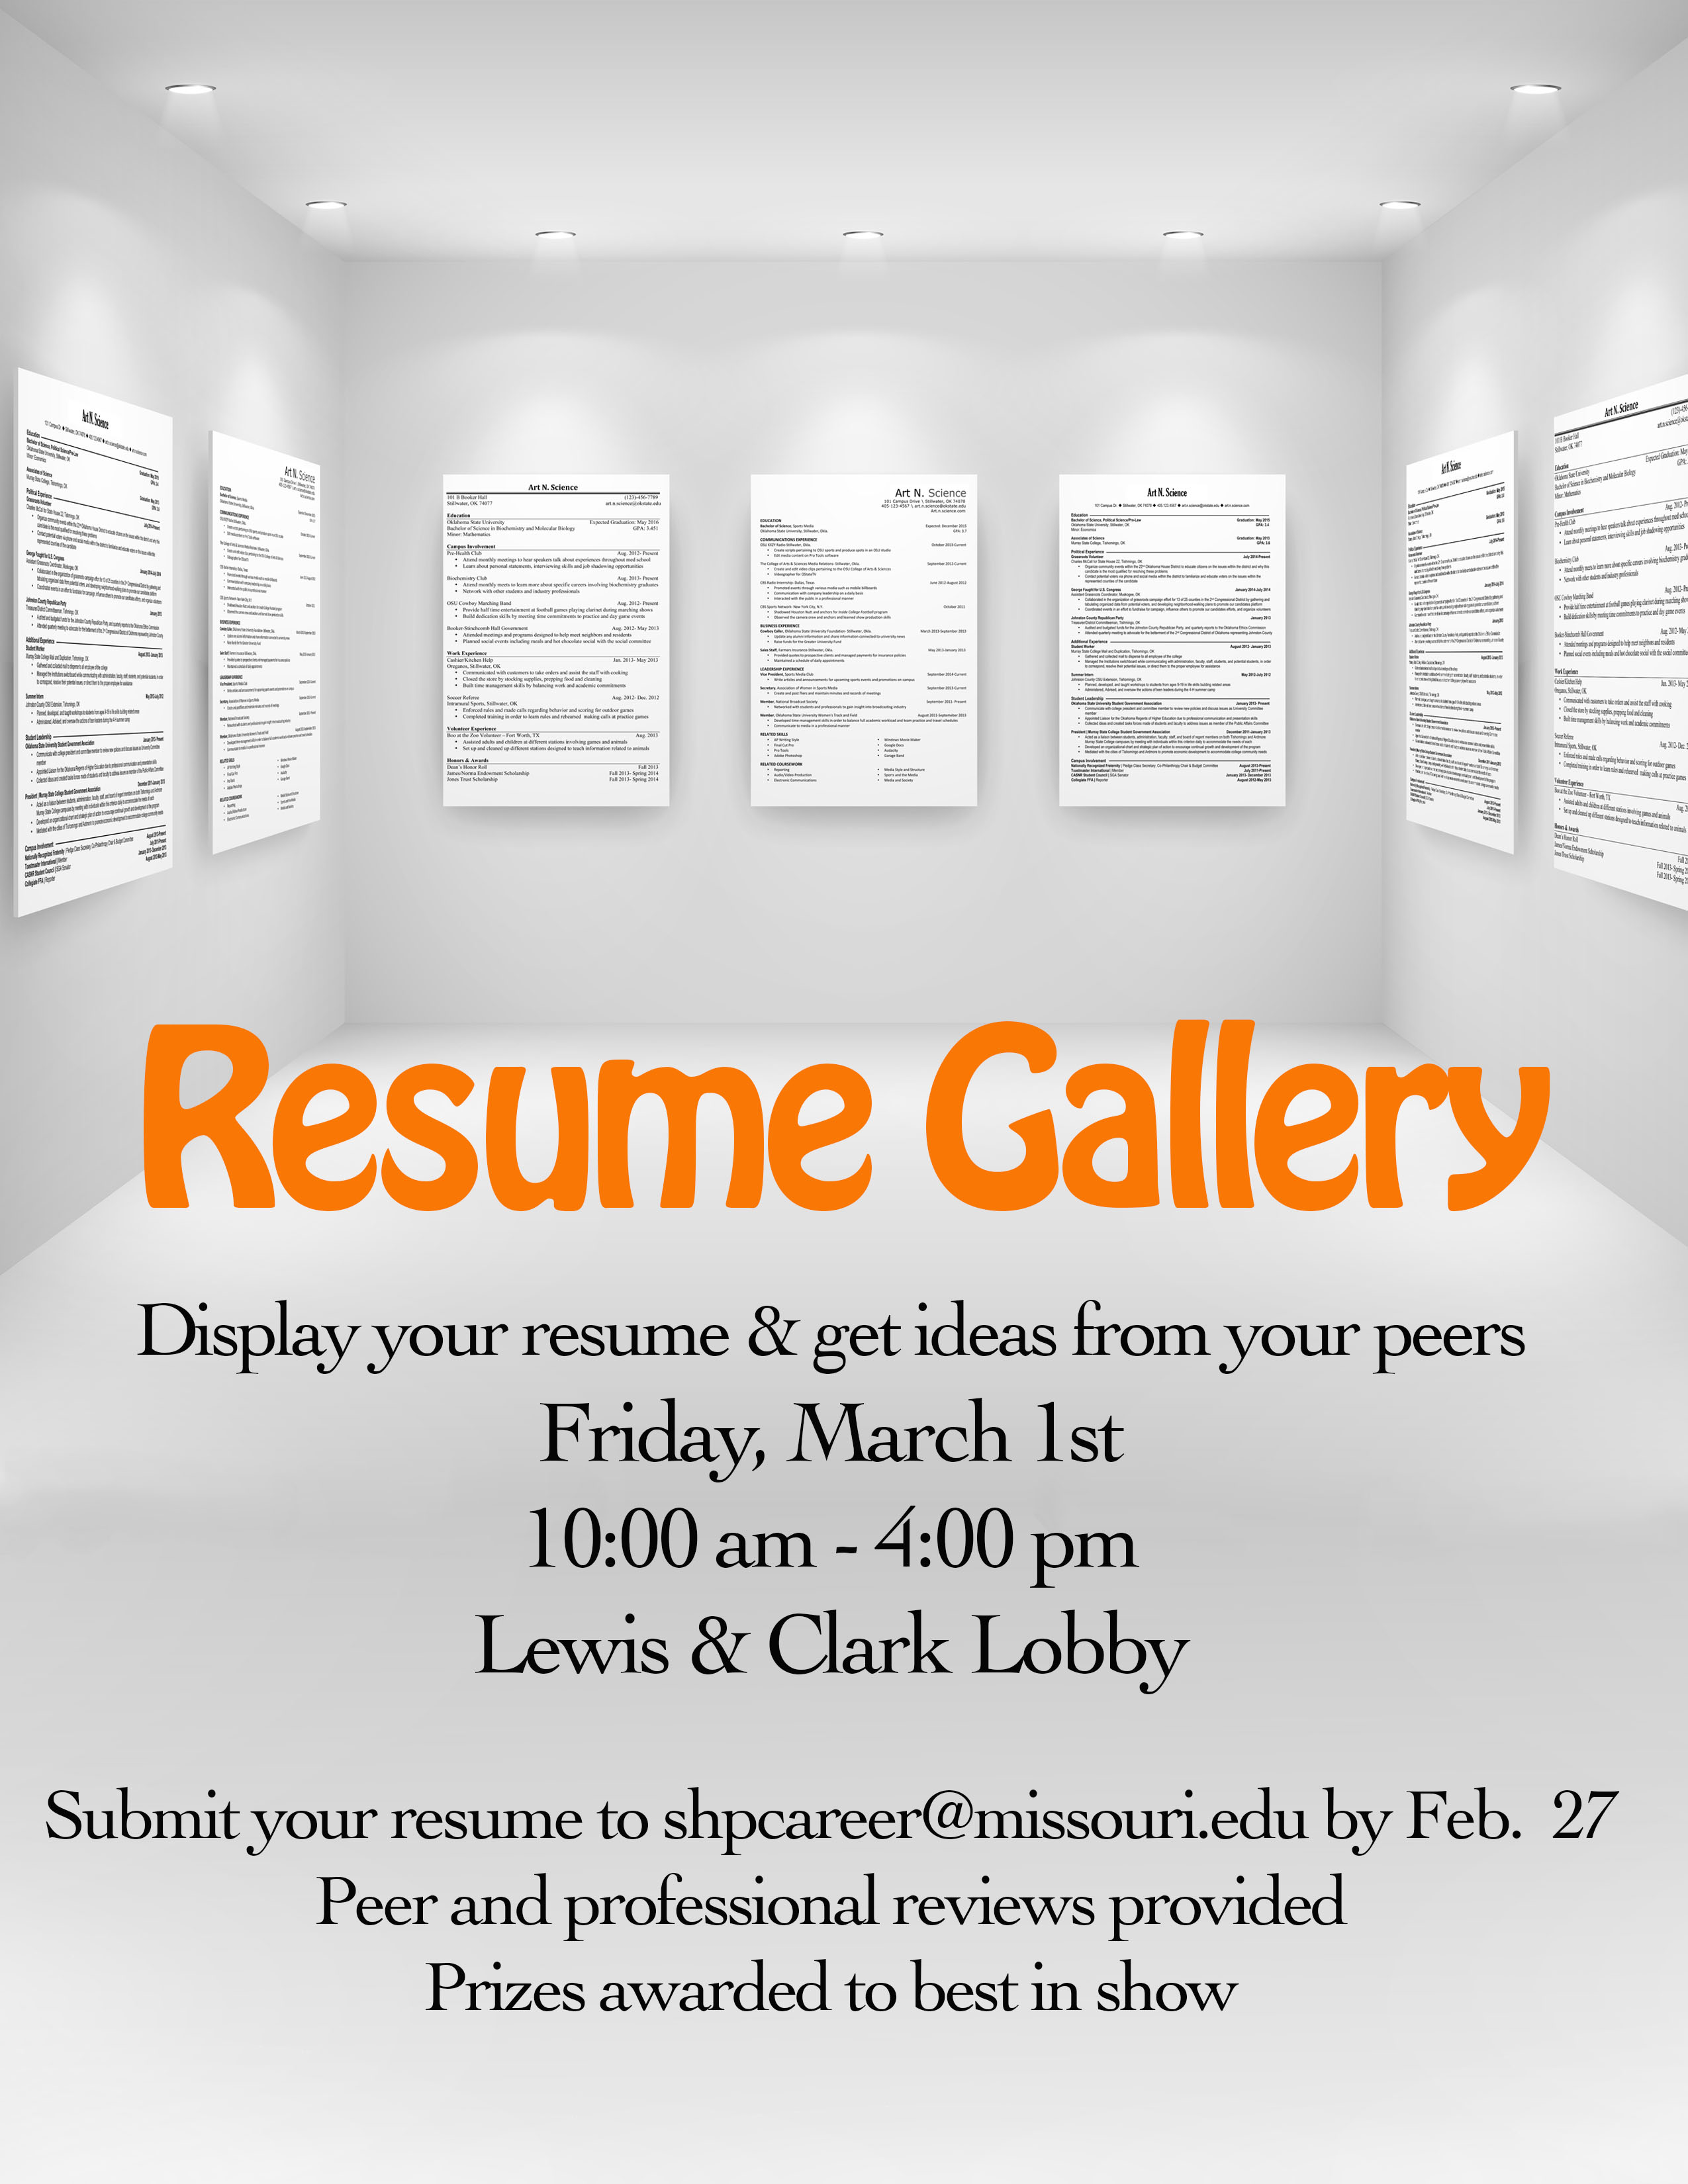 Resume Gallery Flyer 2019, Friday March 1st from 10am-4pm in the Lewis & Clark Lobby. Resumes will be posted for employers to review to help students create the best resume possible!